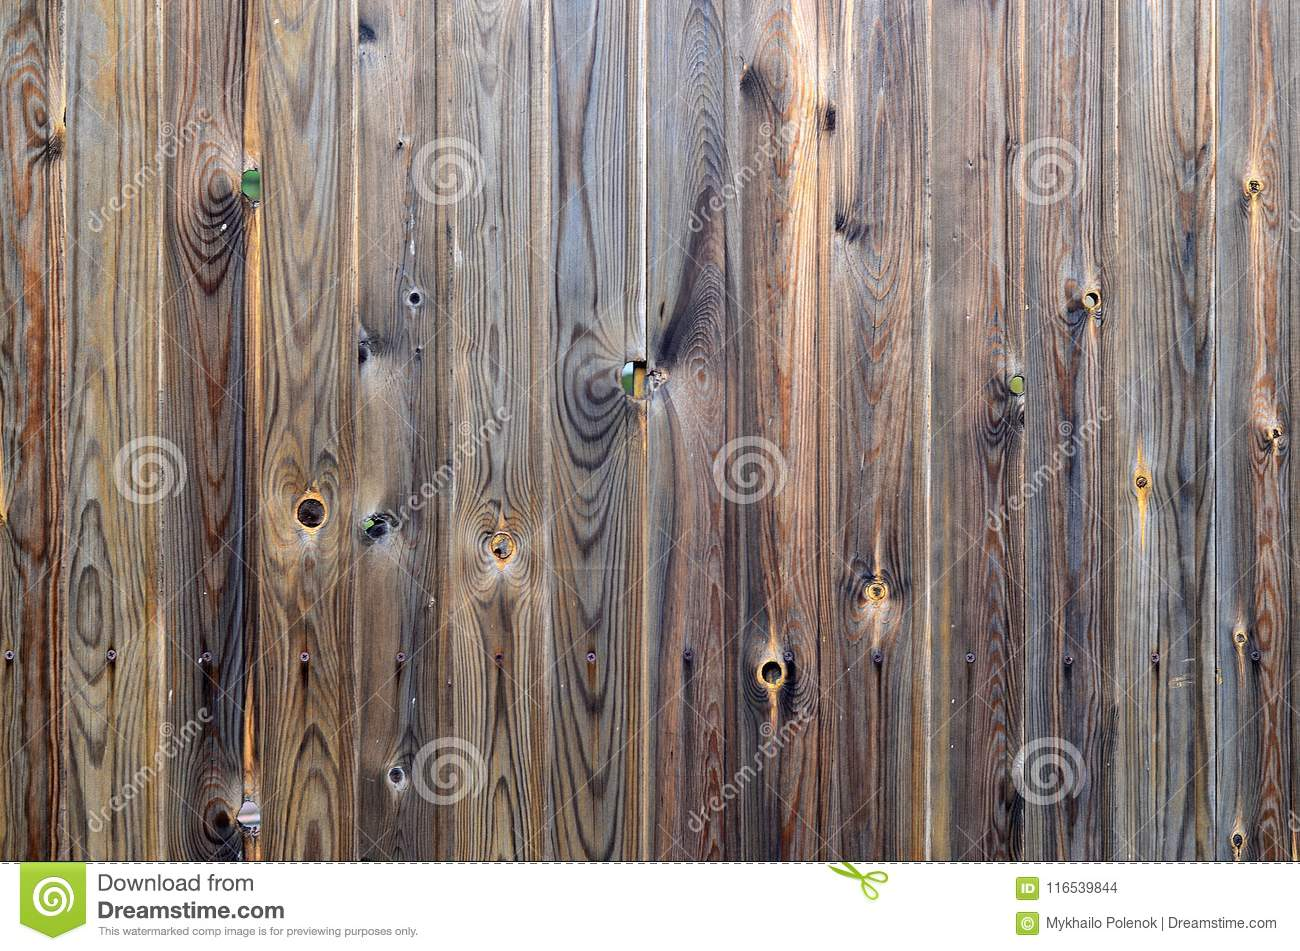 Old grunge dark brown wood panel pattern with beautiful abstract grain surface texture, vertical striped background or backdrop i